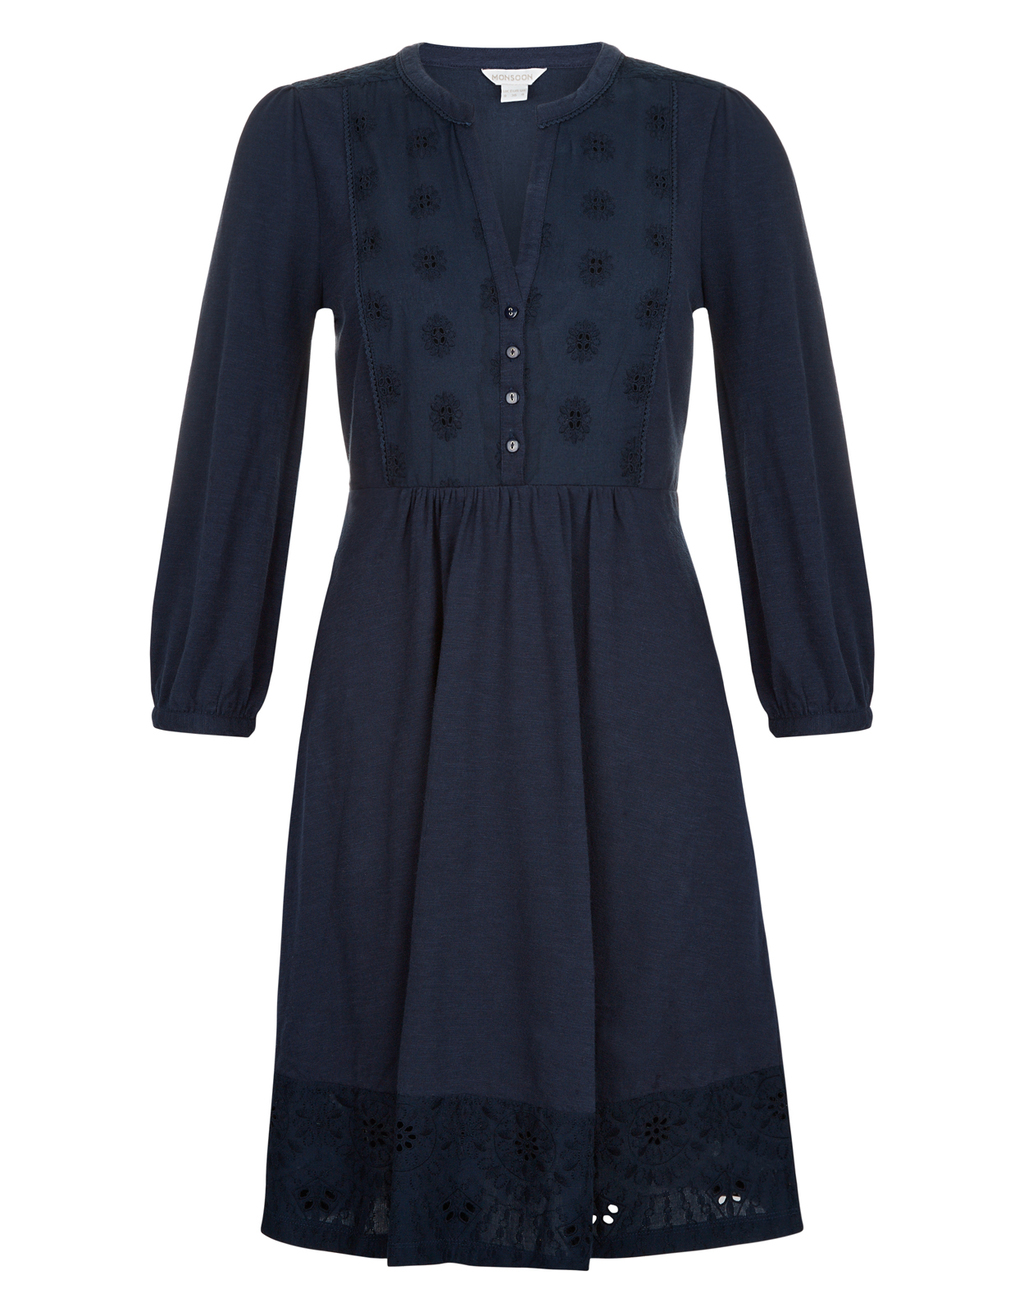 Suki Schiffly Casual Dress - sleeve style: balloon; bust detail: buttons at bust (in middle at breastbone)/zip detail at bust; predominant colour: navy; occasions: casual; length: on the knee; fit: fitted at waist & bust; style: fit & flare; neckline: collarstand & mandarin with v-neck; fibres: cotton - 100%; hip detail: soft pleats at hip/draping at hip/flared at hip; sleeve length: 3/4 length; texture group: cotton feel fabrics; pattern type: fabric; pattern size: standard; pattern: patterned/print; embellishment: embroidered; season: a/w 2016